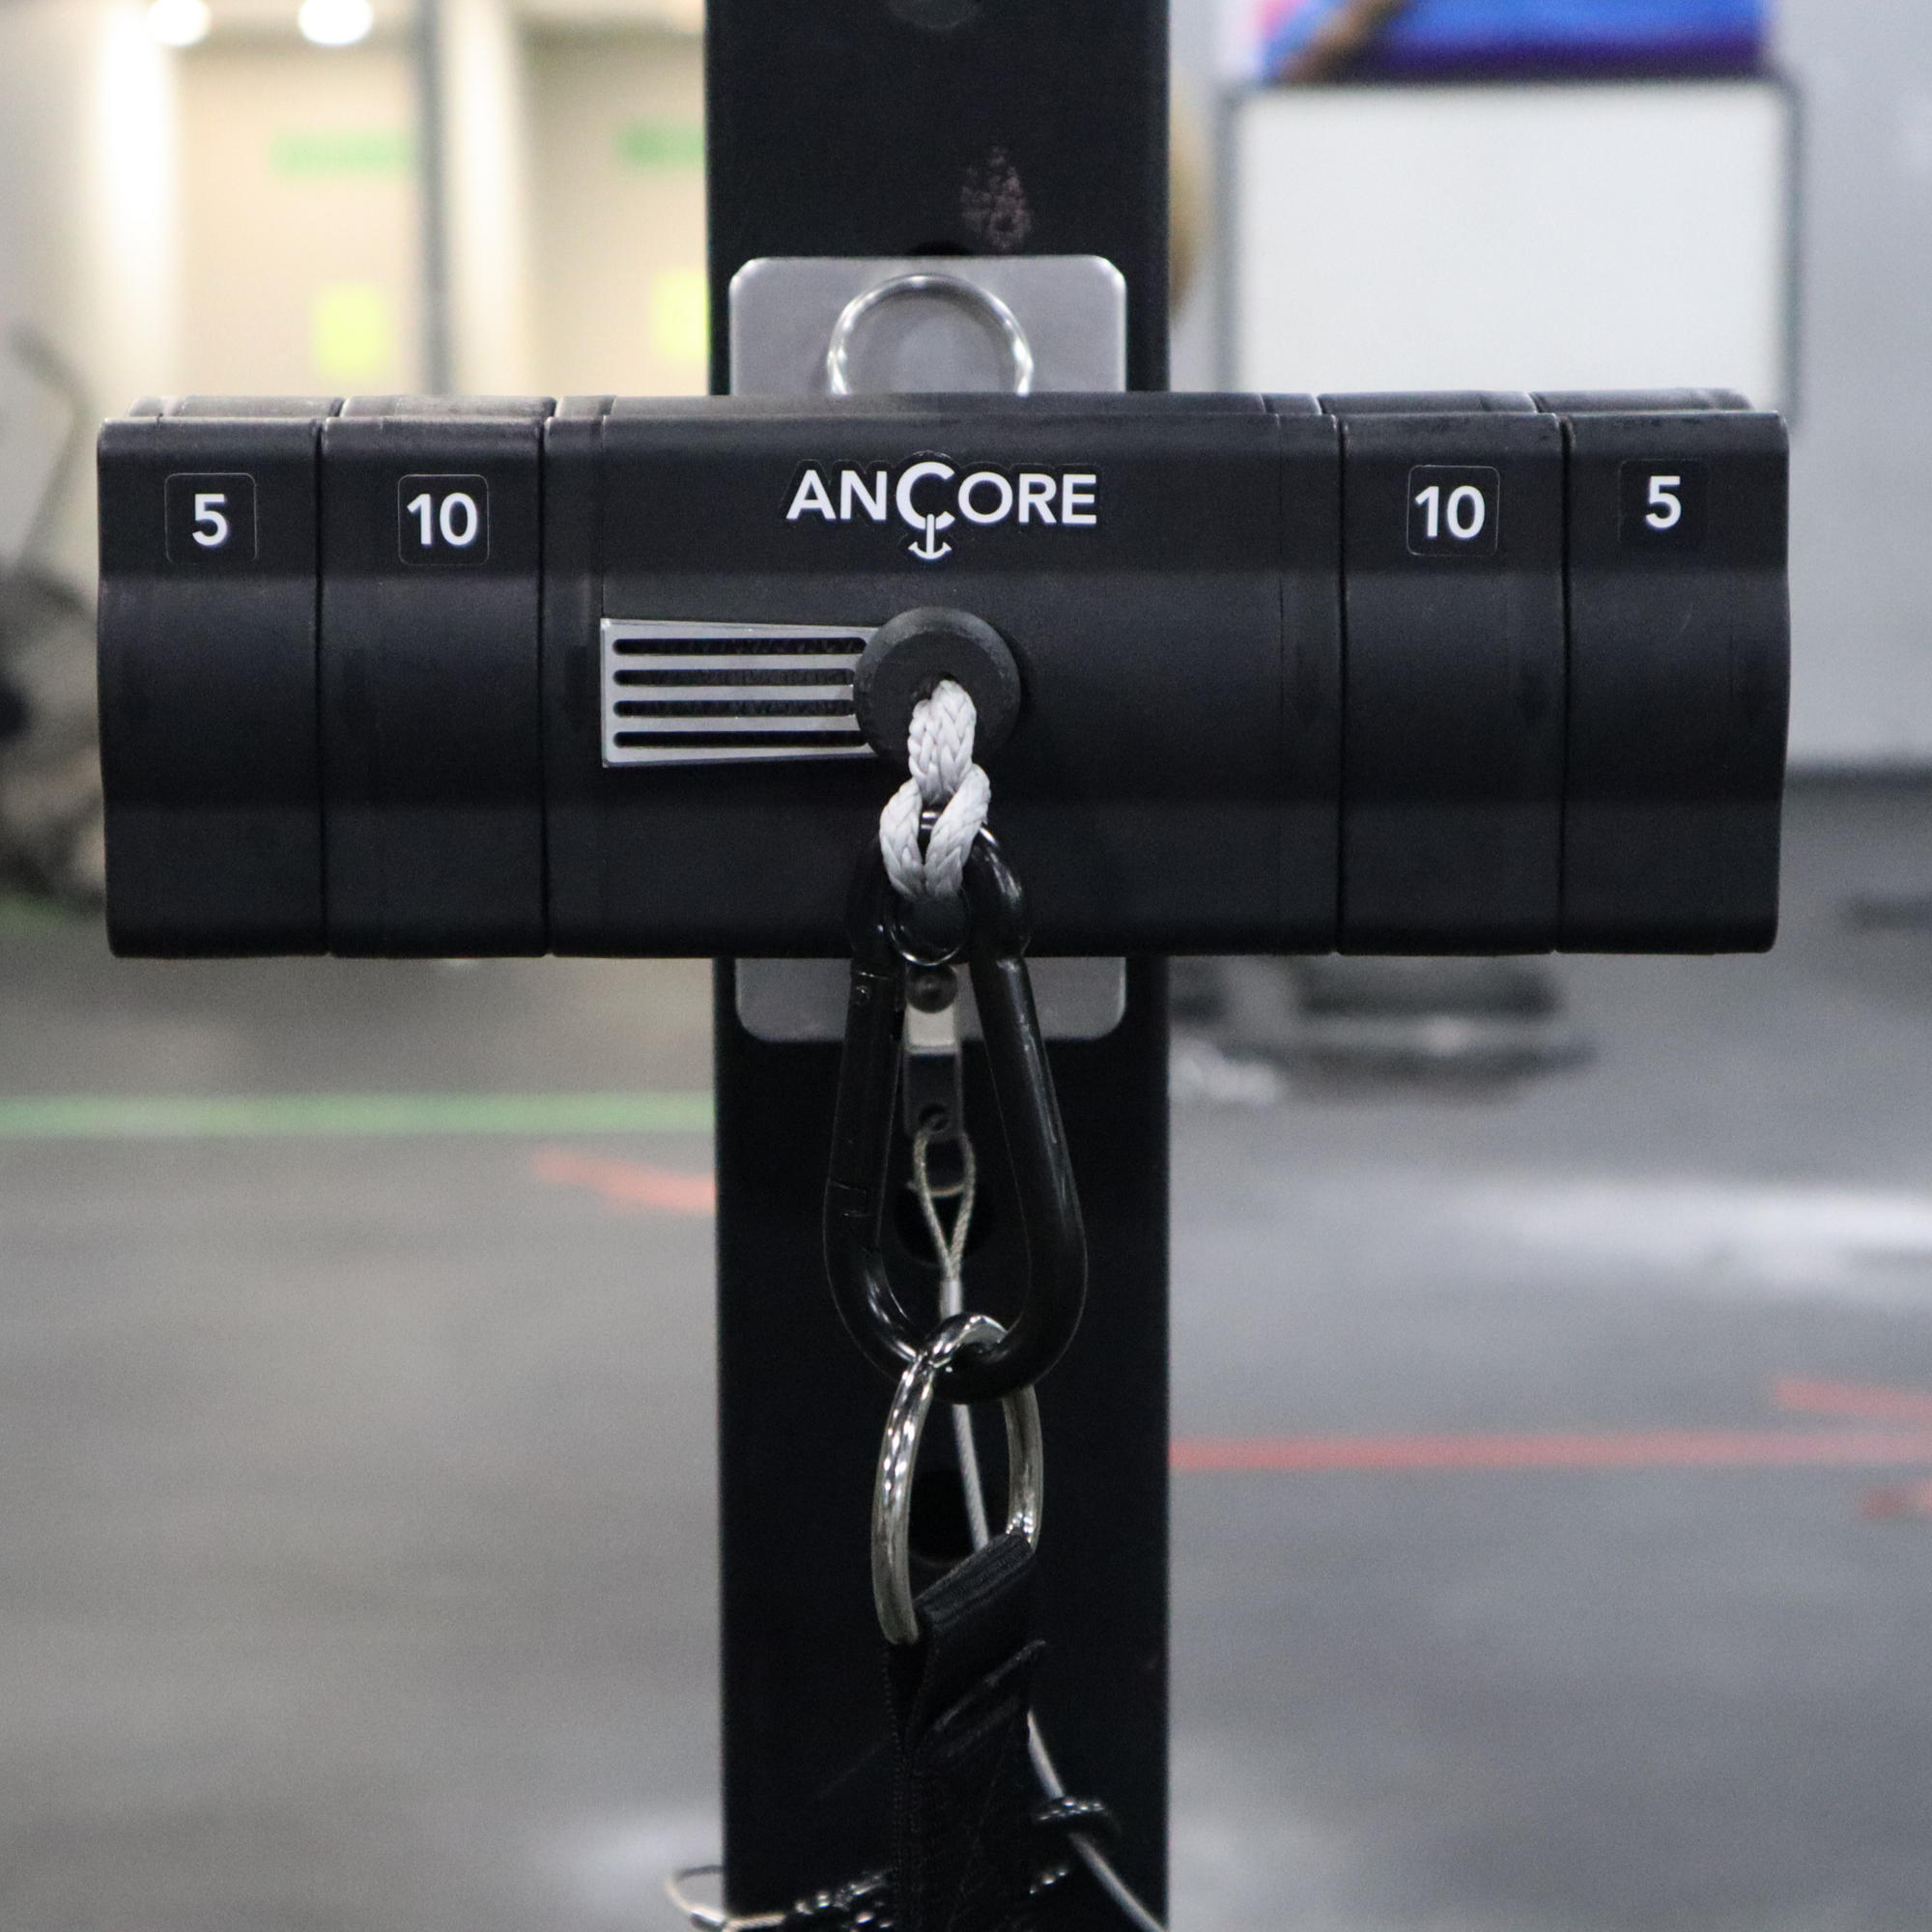 the ancore trainer and ancore rack mount being used on a squat rack